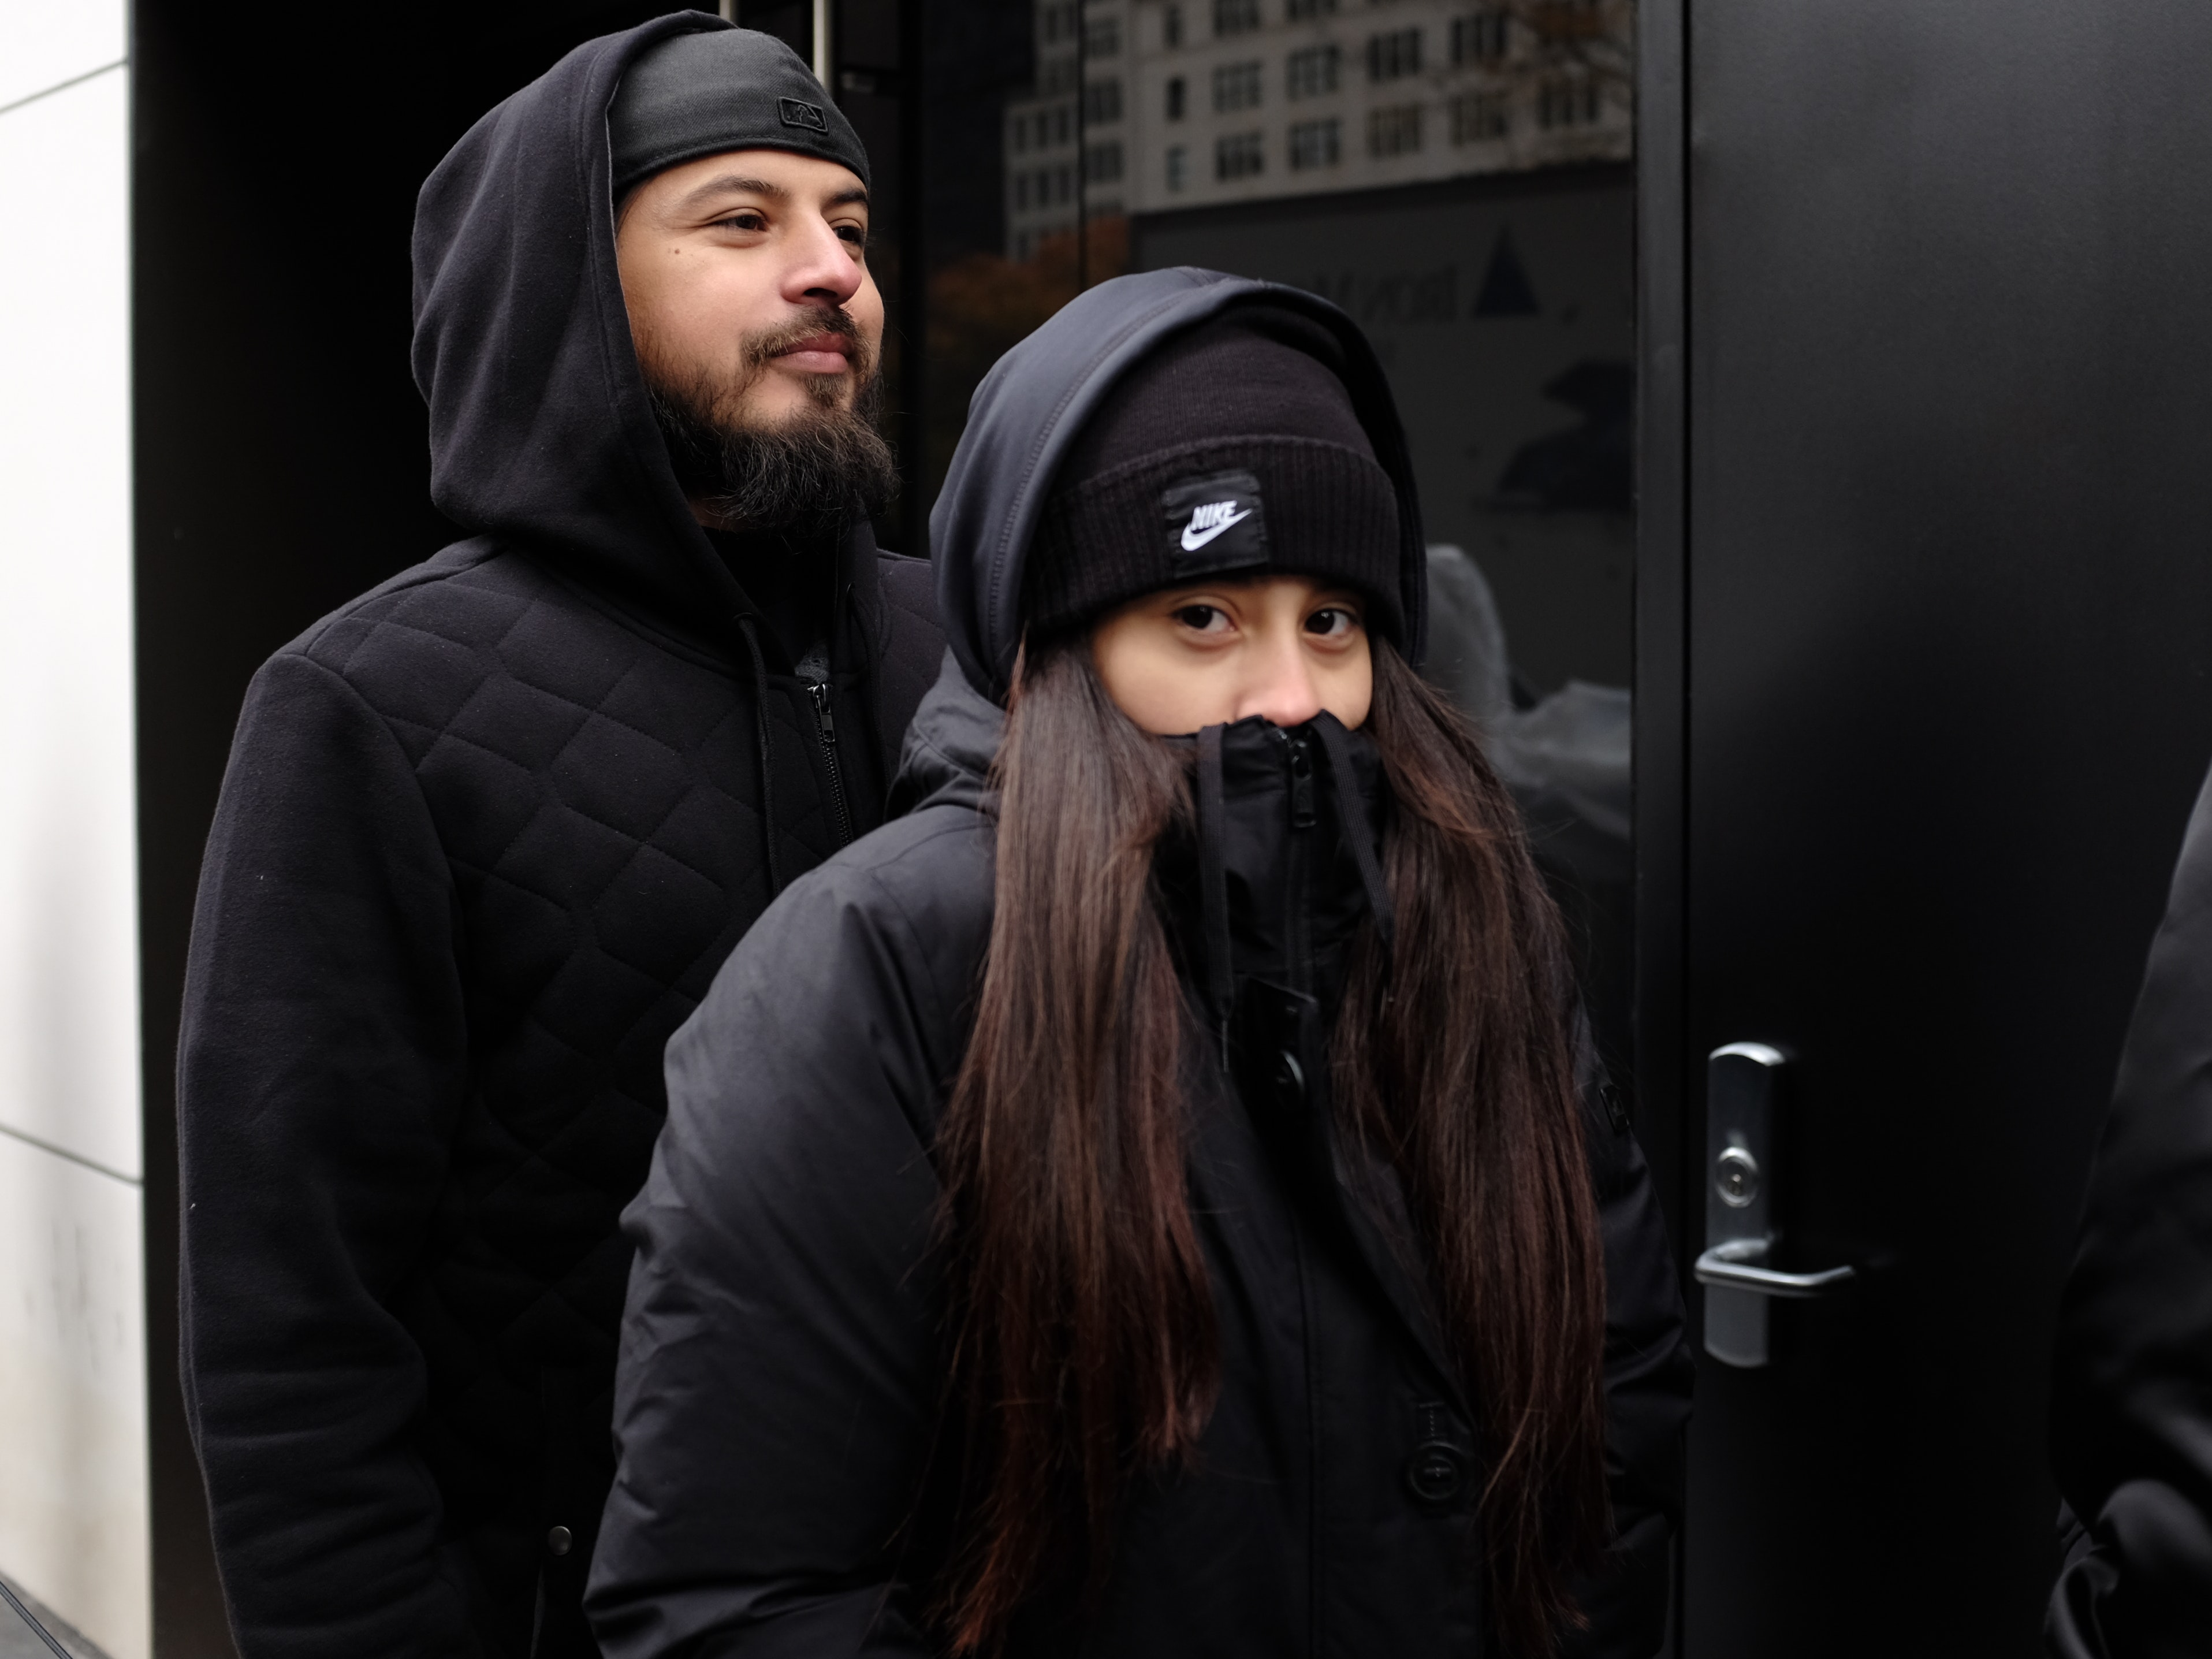 Destiny and her dad, Ramiro, braving the cold.